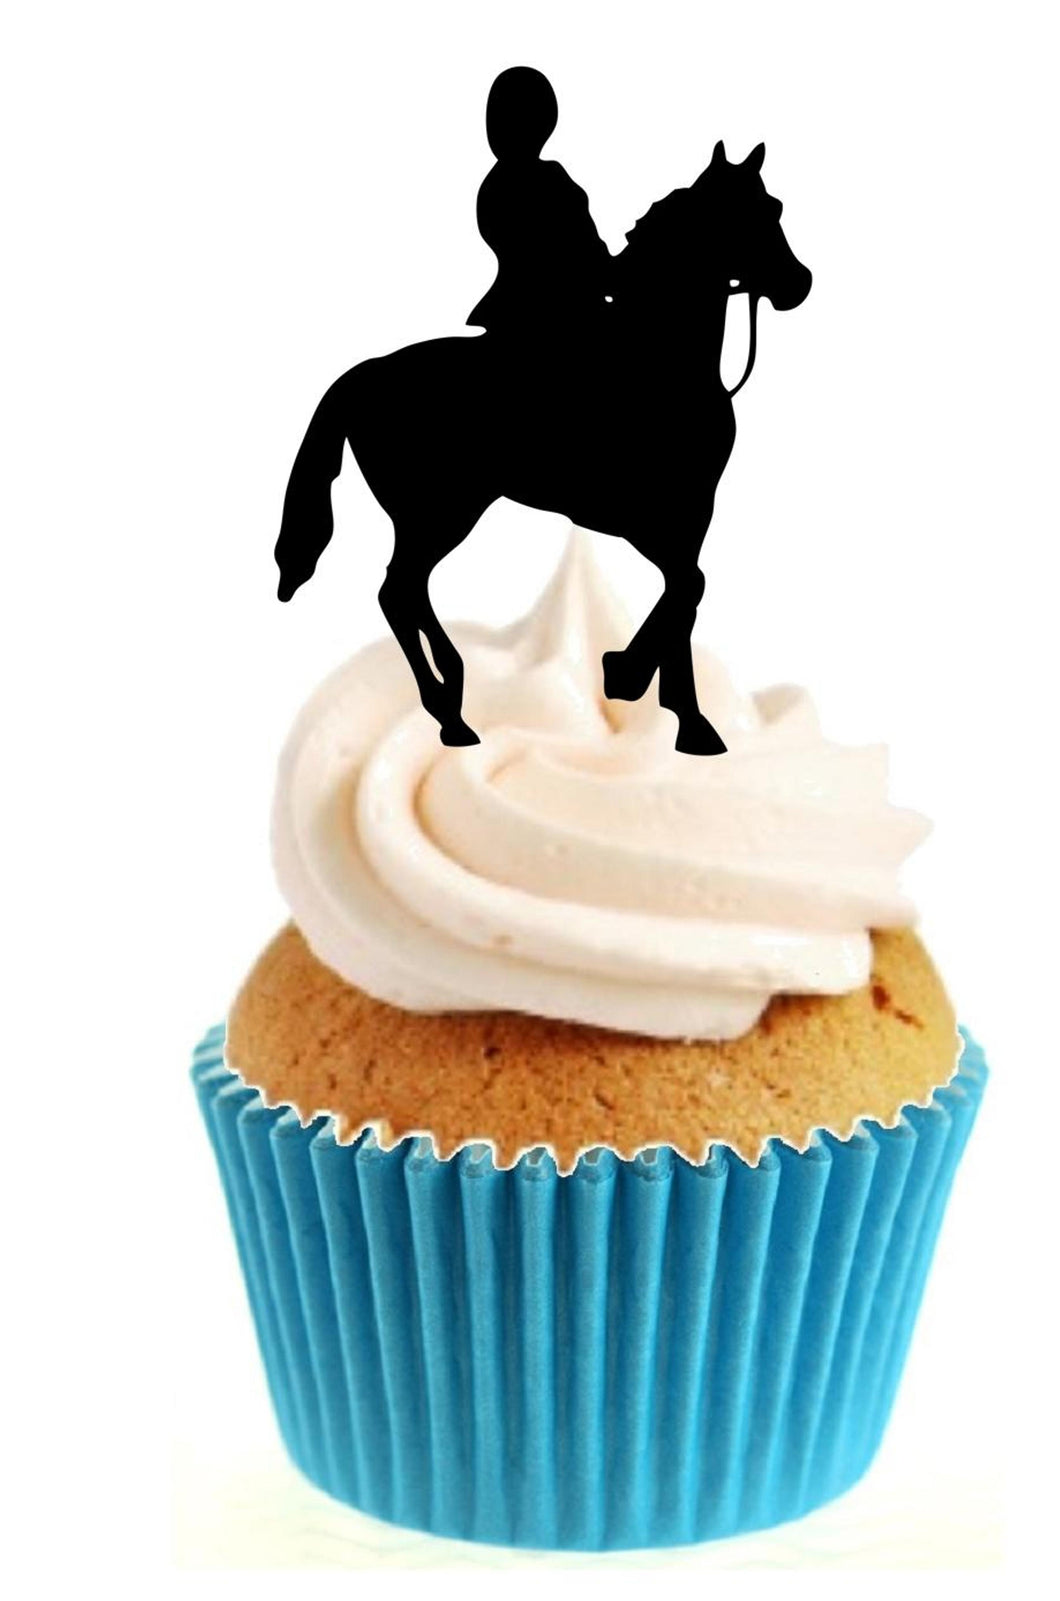 Horse Riding Silhouette Stand Up Cake Toppers (12 pack)